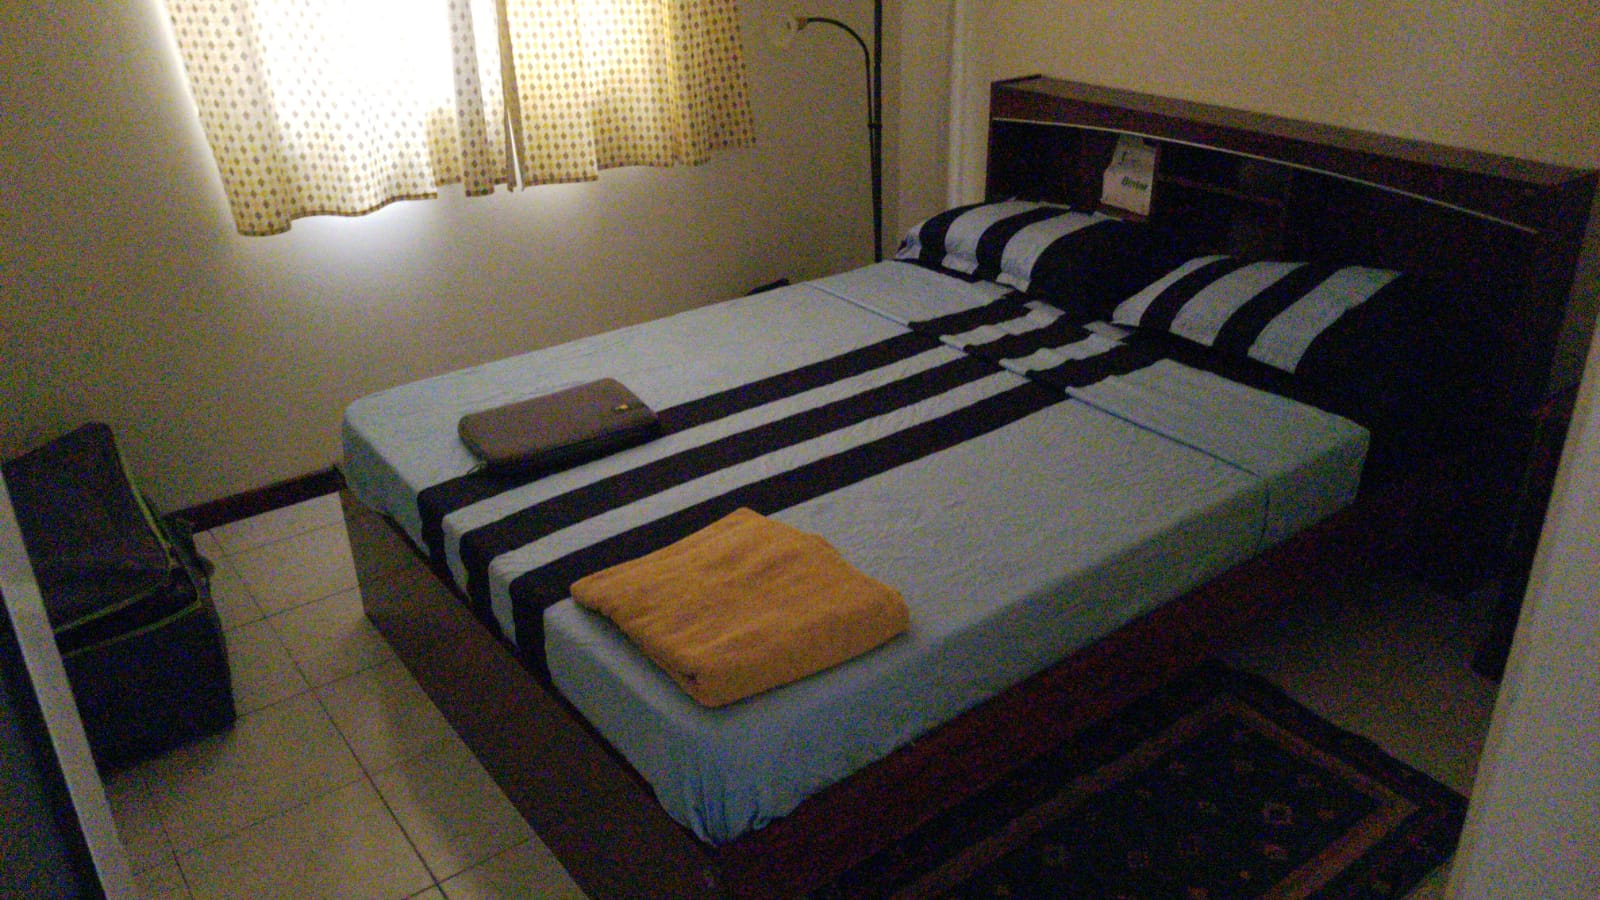 a bedroom with a bed with blue bedsheets